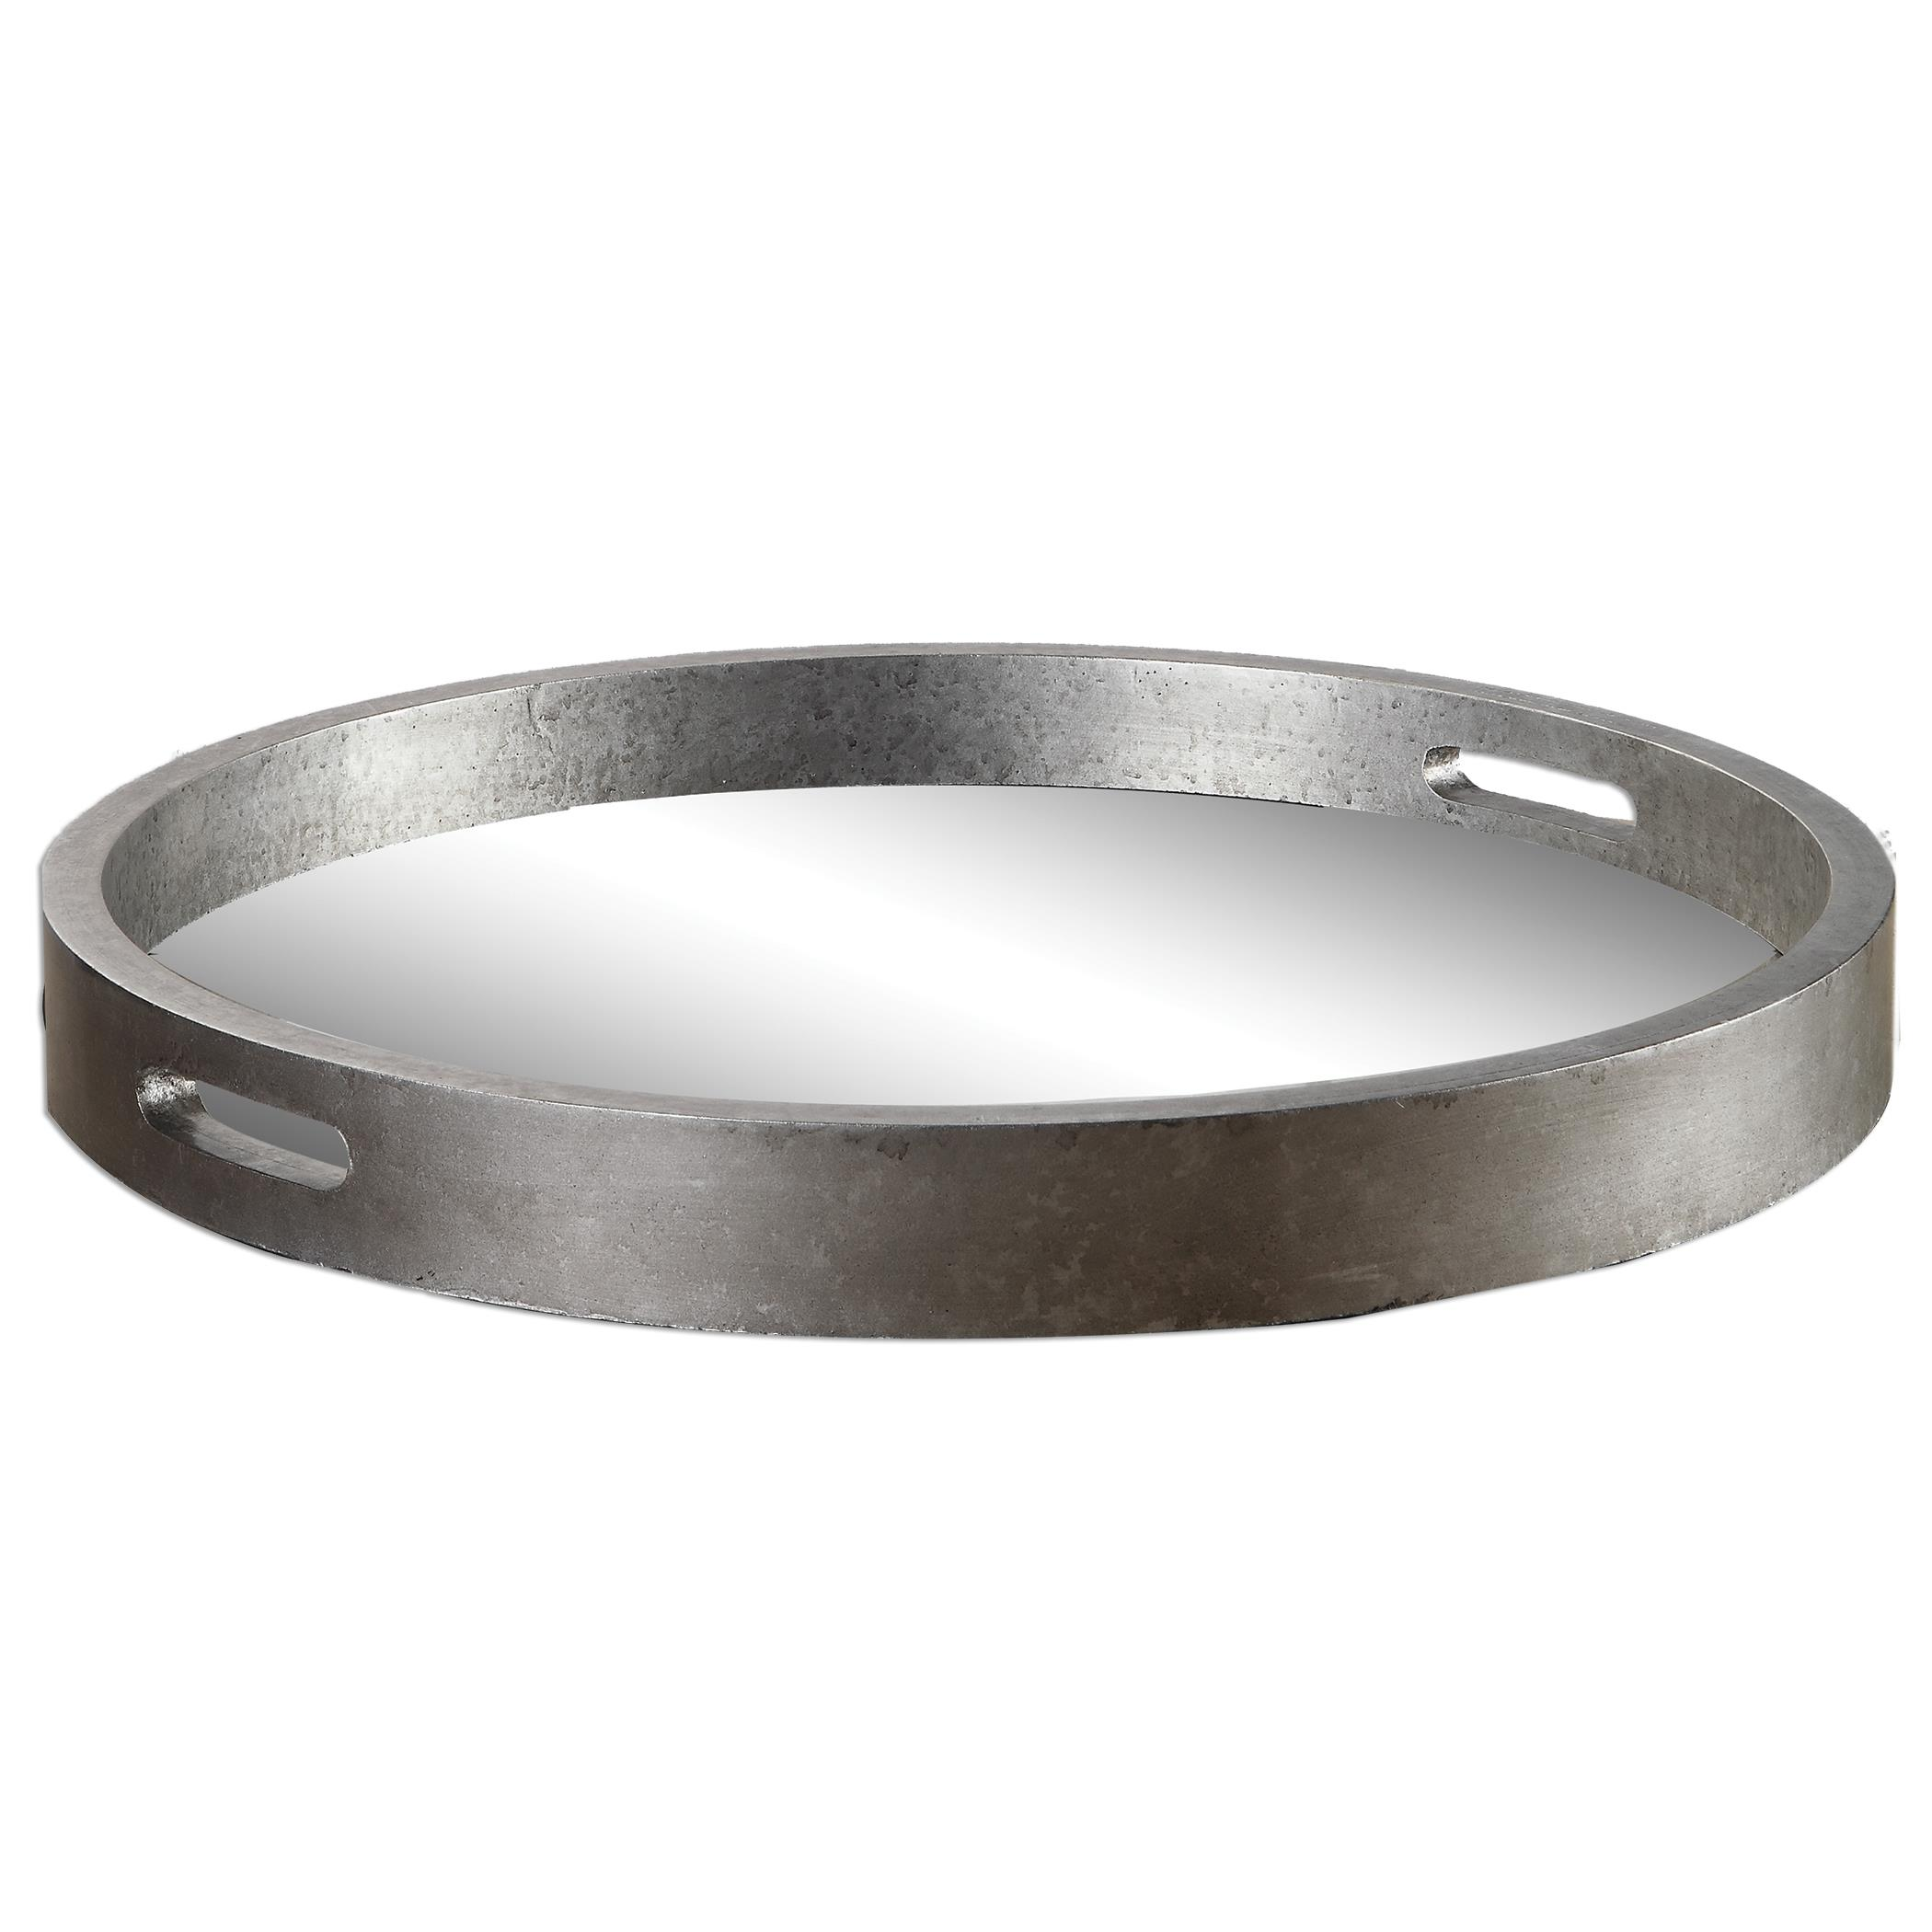 Accessories Bechet Round Silver Tray by Uttermost at Suburban Furniture